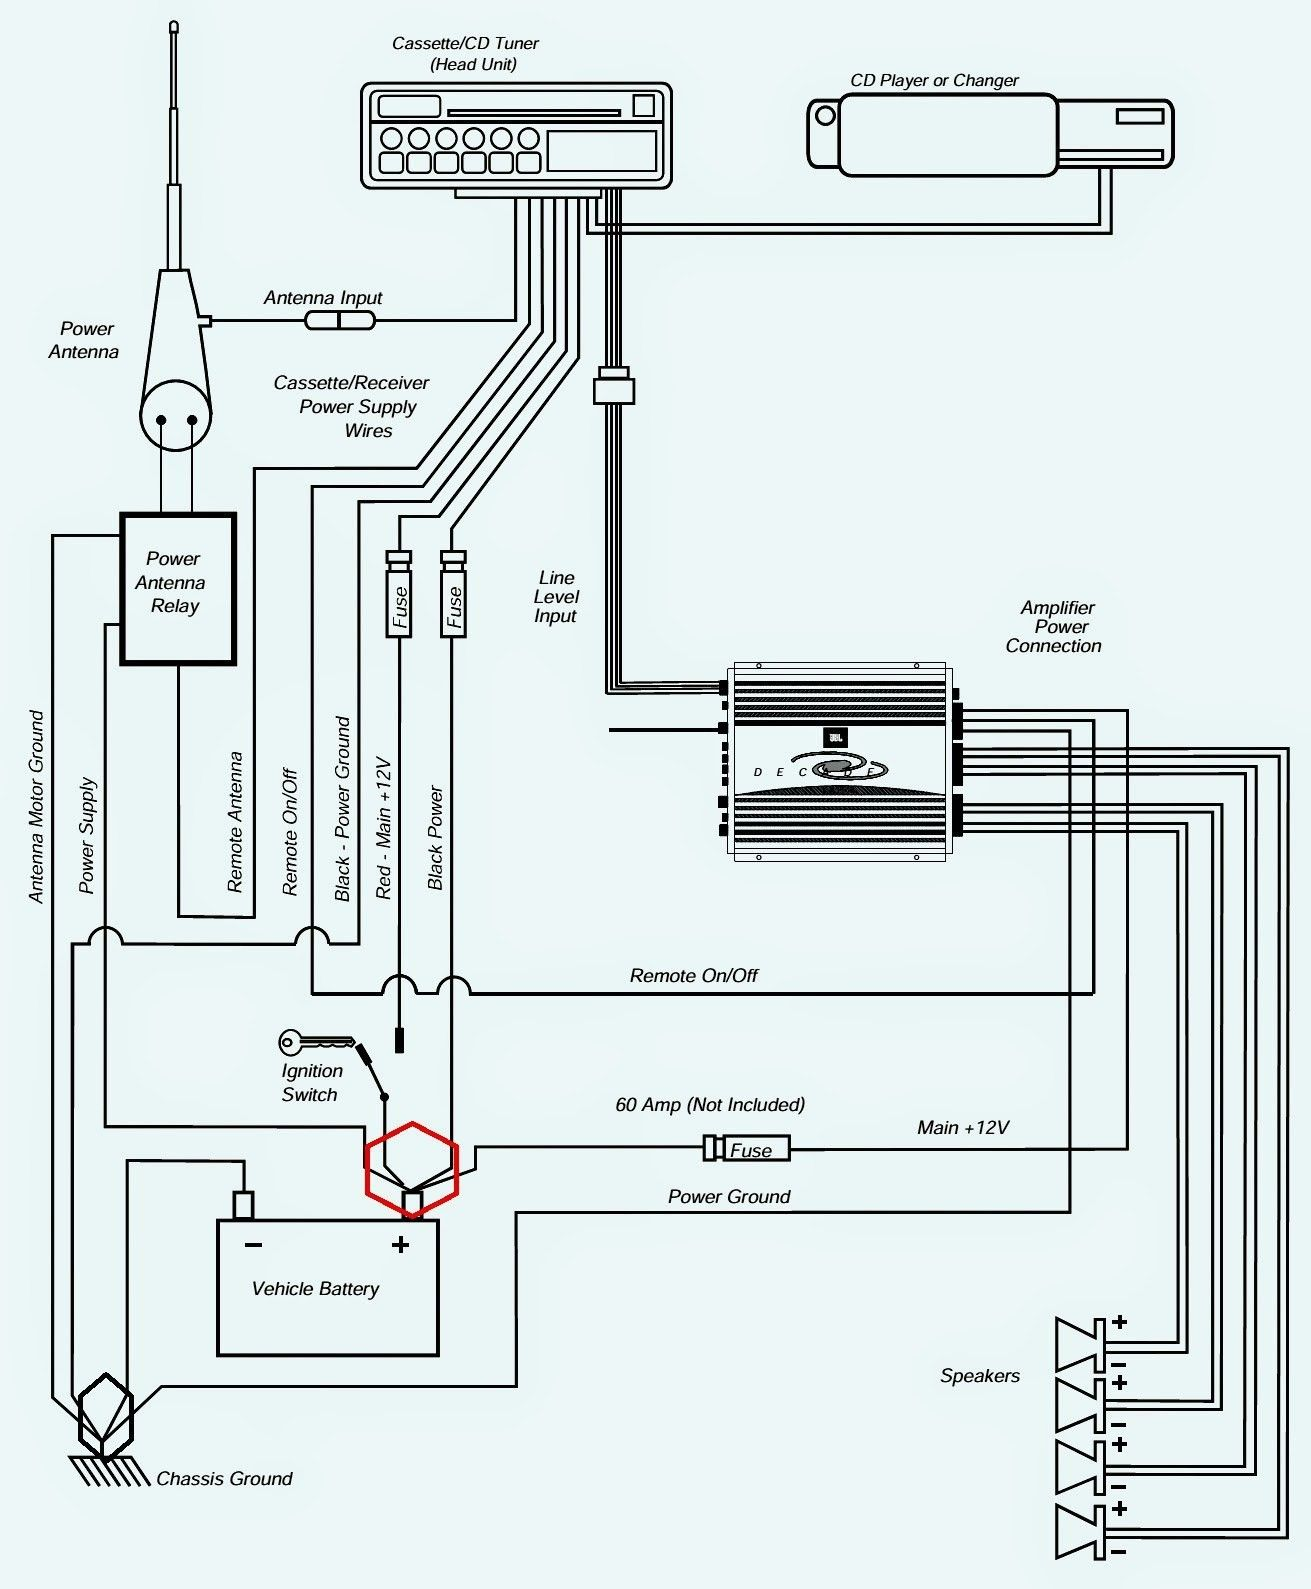 New Bmw E46 Business Radio Wiring Diagram   Pioneer car stereo, Car stereo,  Bluetooth car stereo Pinterest